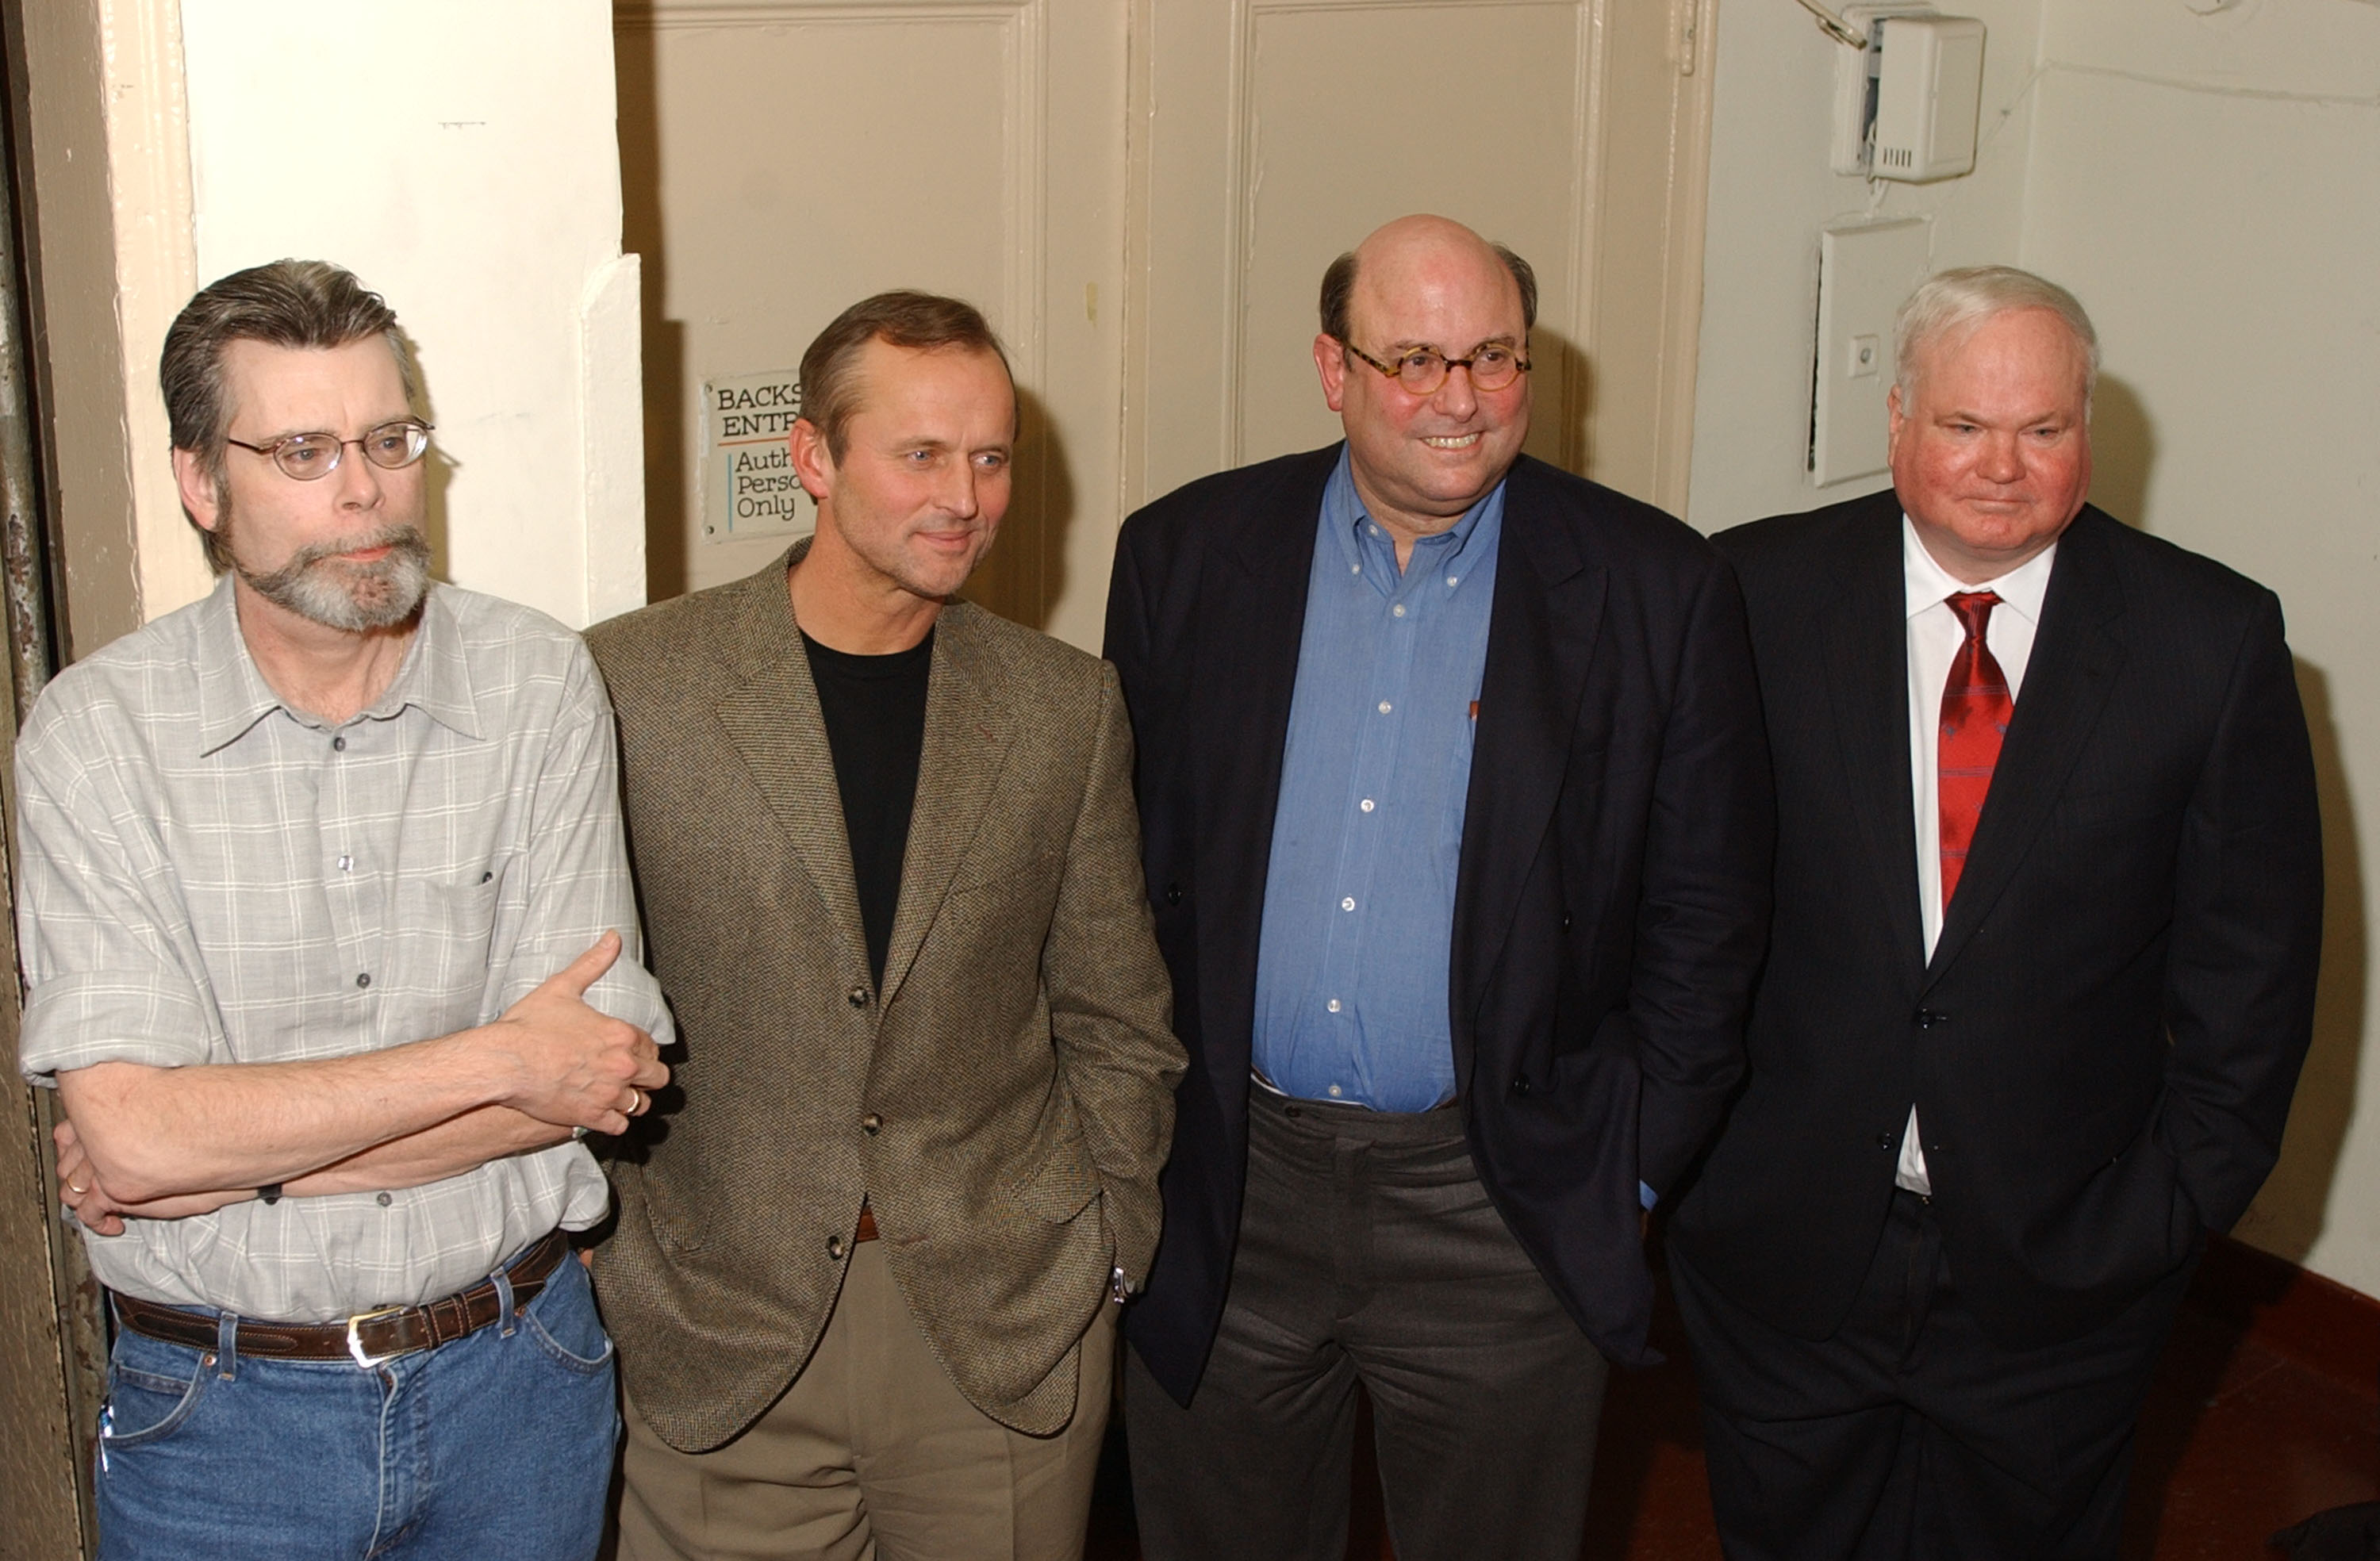 Stephen King, John Grisham, Peter Straub and Pat Conroy attend a benefit reading for Frank Muller at Town Hall February 2, 2002 in New York City. Actor and audiobook narrator Frank Muller sustained debilitating injuries in a motorcycle accident in November 2001. The event was sponsored in part by The Wavedancer Foundation, Inc. and the Audio Publishers Association and raised funds to assist in meeting the immediate needs of Muller and his family. (Getty)